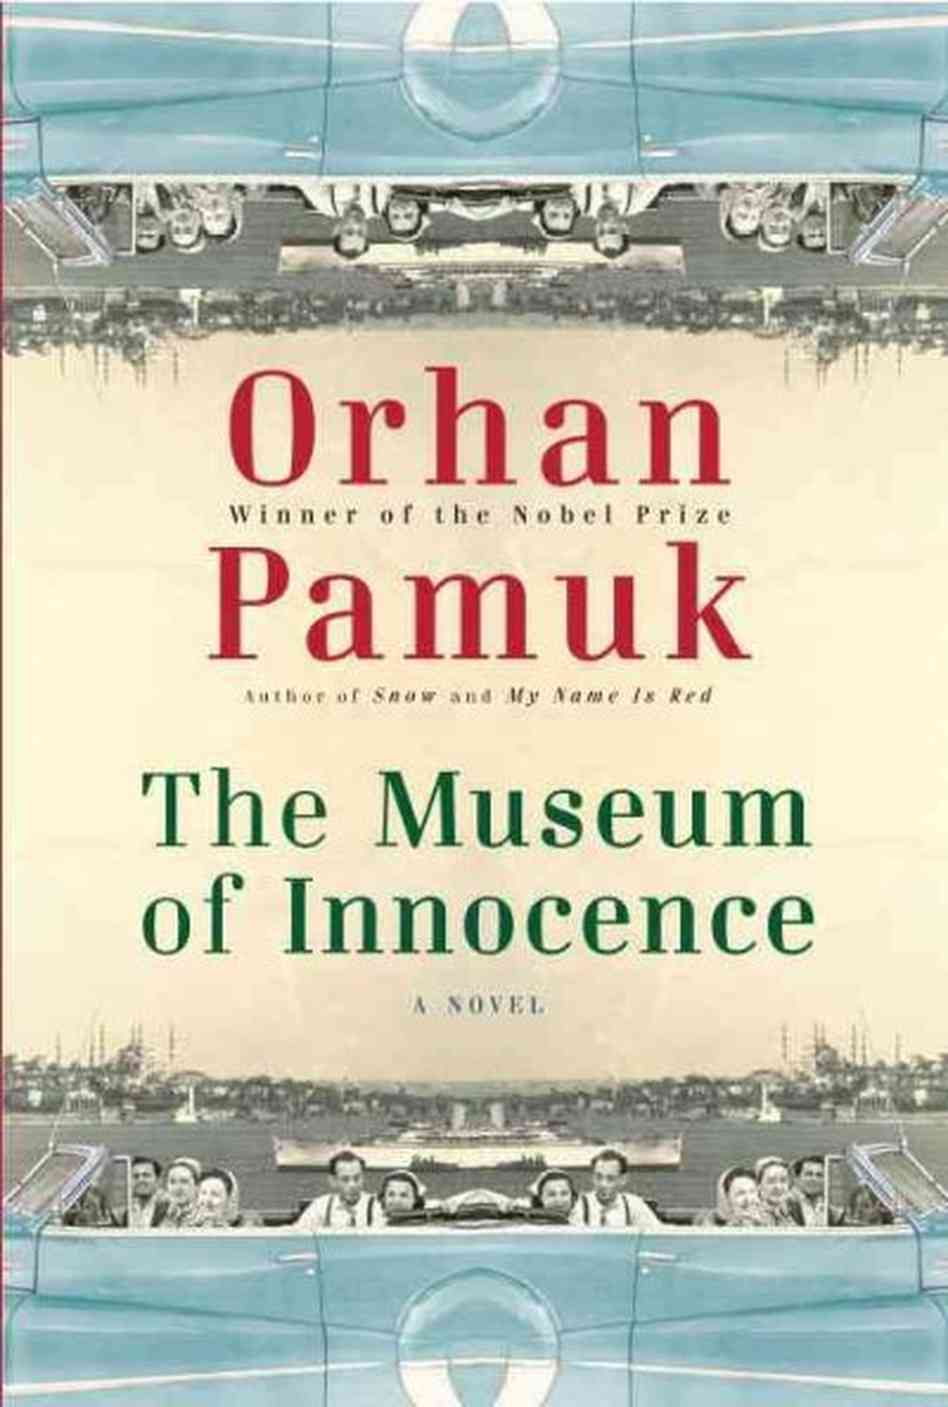 Museum of Innocence by Orhan Pamuk, translated by Maureen ...